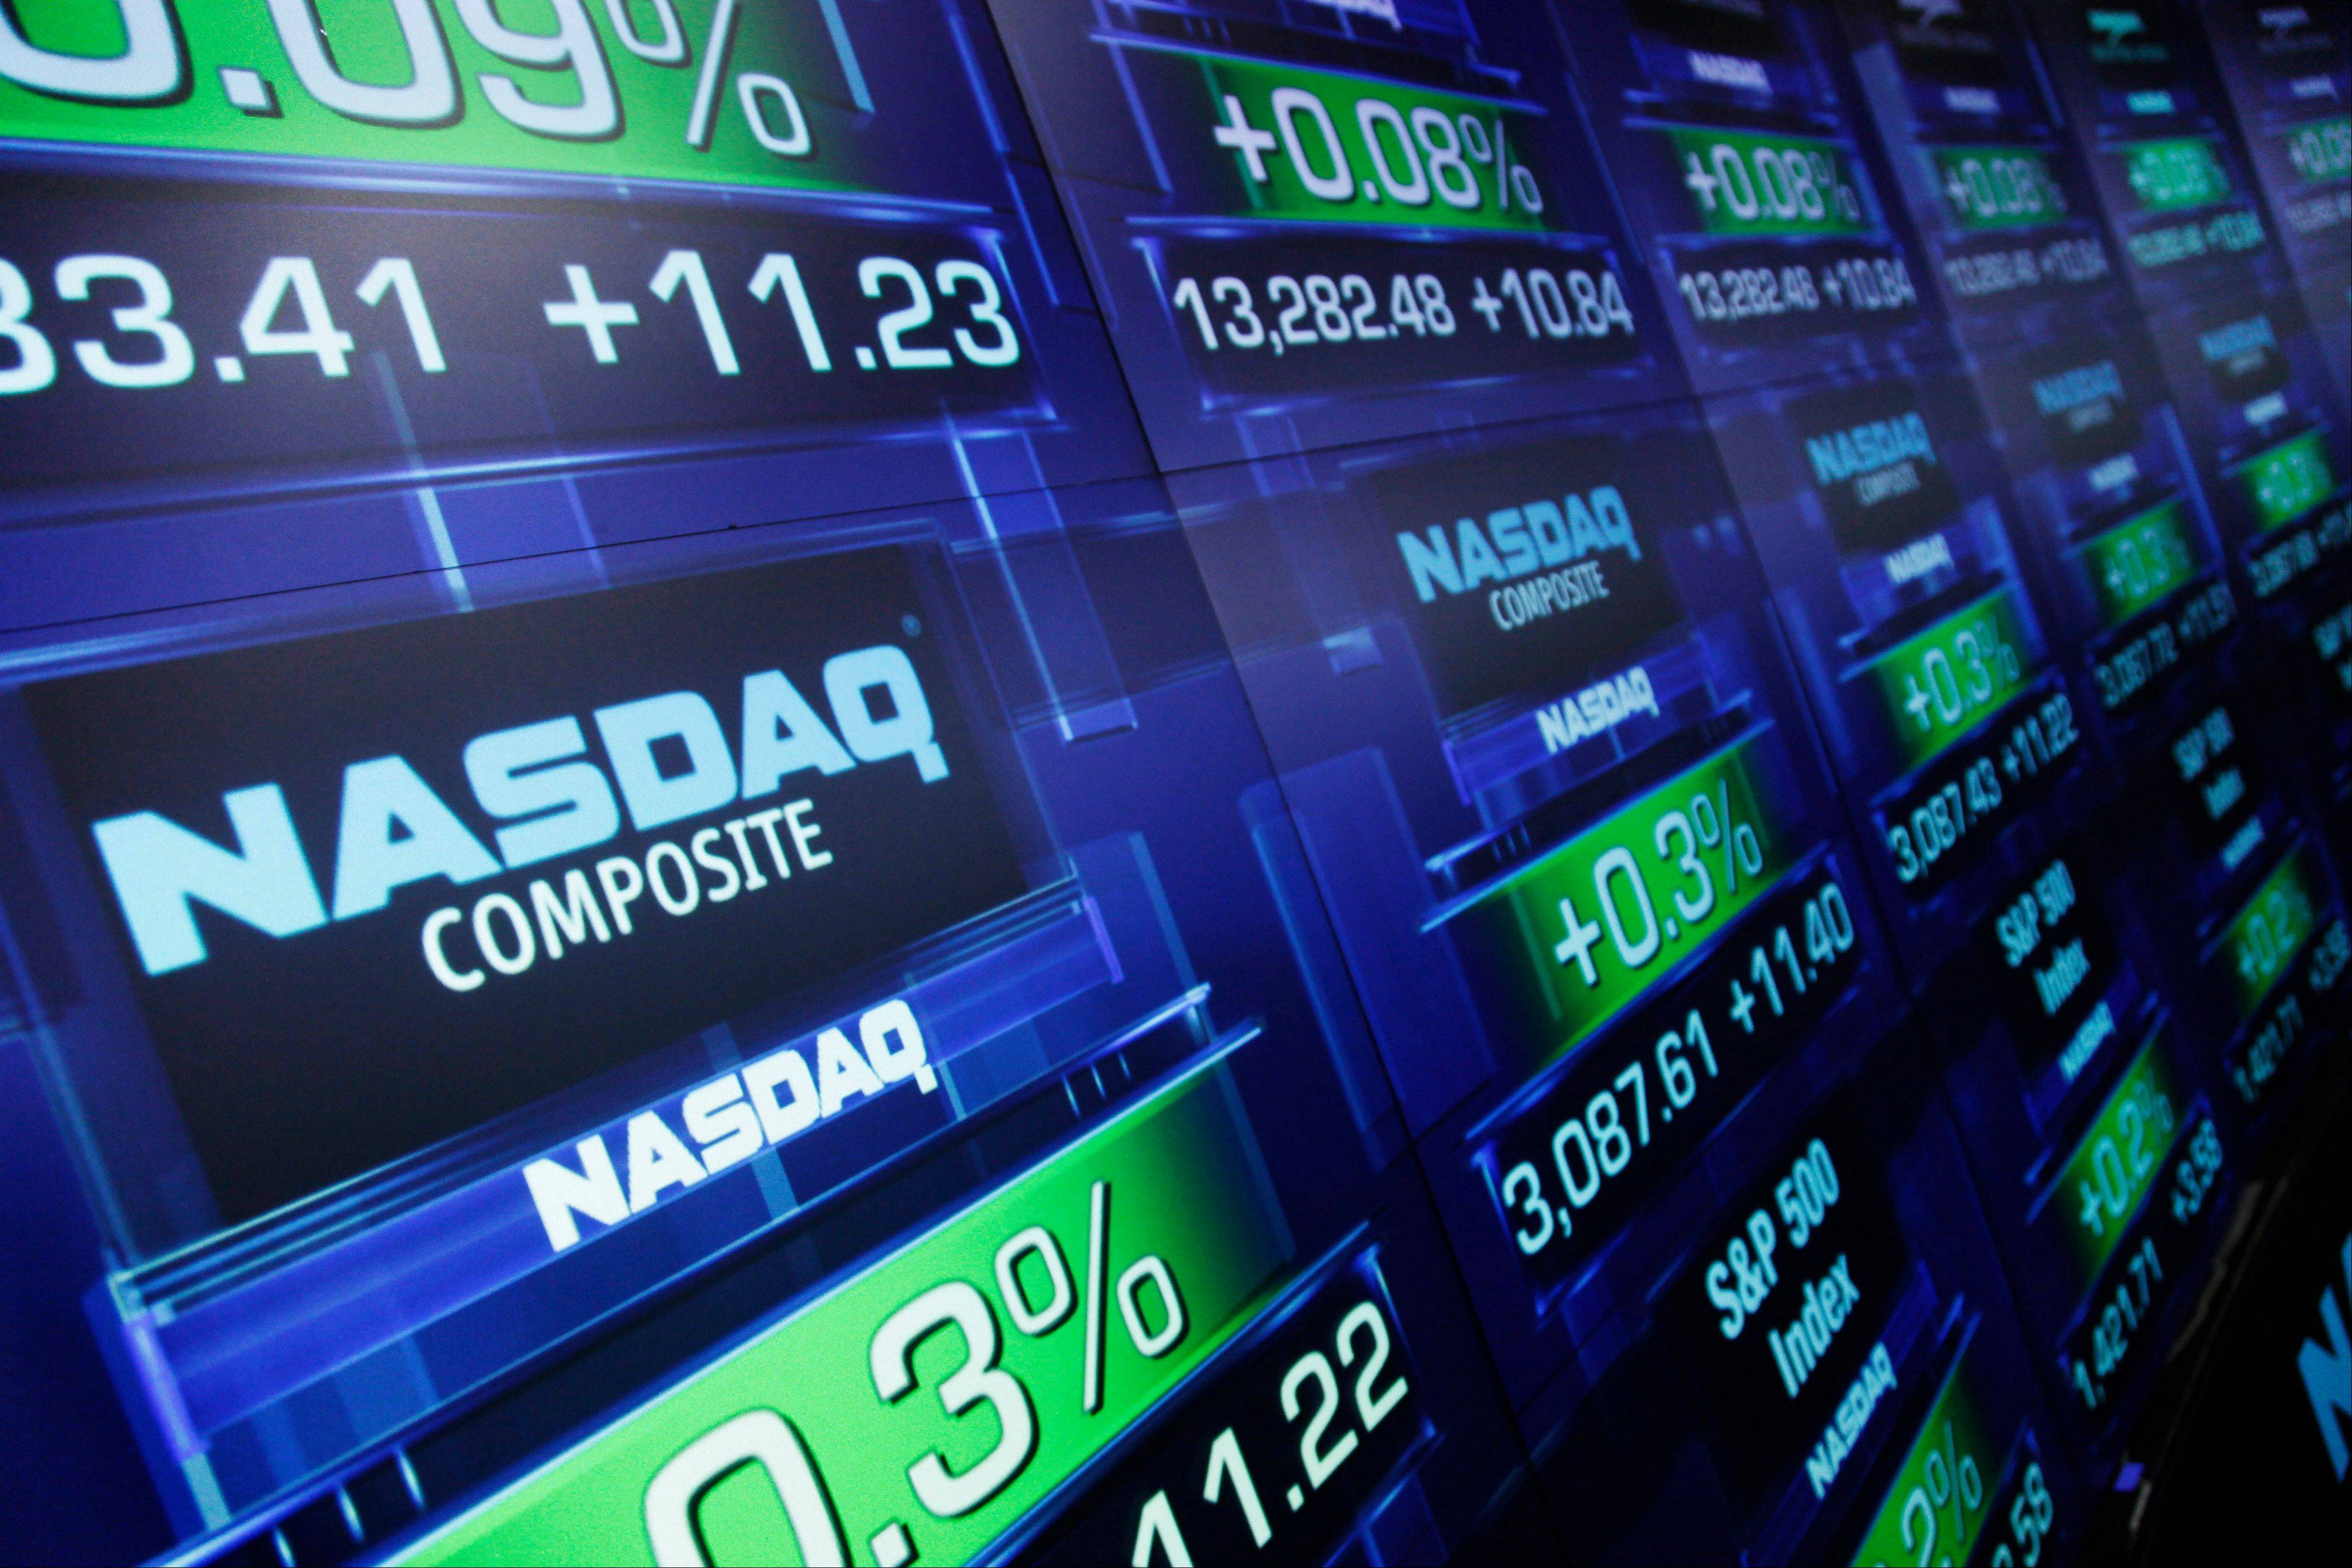 Trading Thursday was halted in Nasdaq-listed securities because of a technical problem. The exchange sent out an alert to traders at 11:20 p.m. CDT saying that trading was being halted until further notice because of problems with a quote dissemination system.